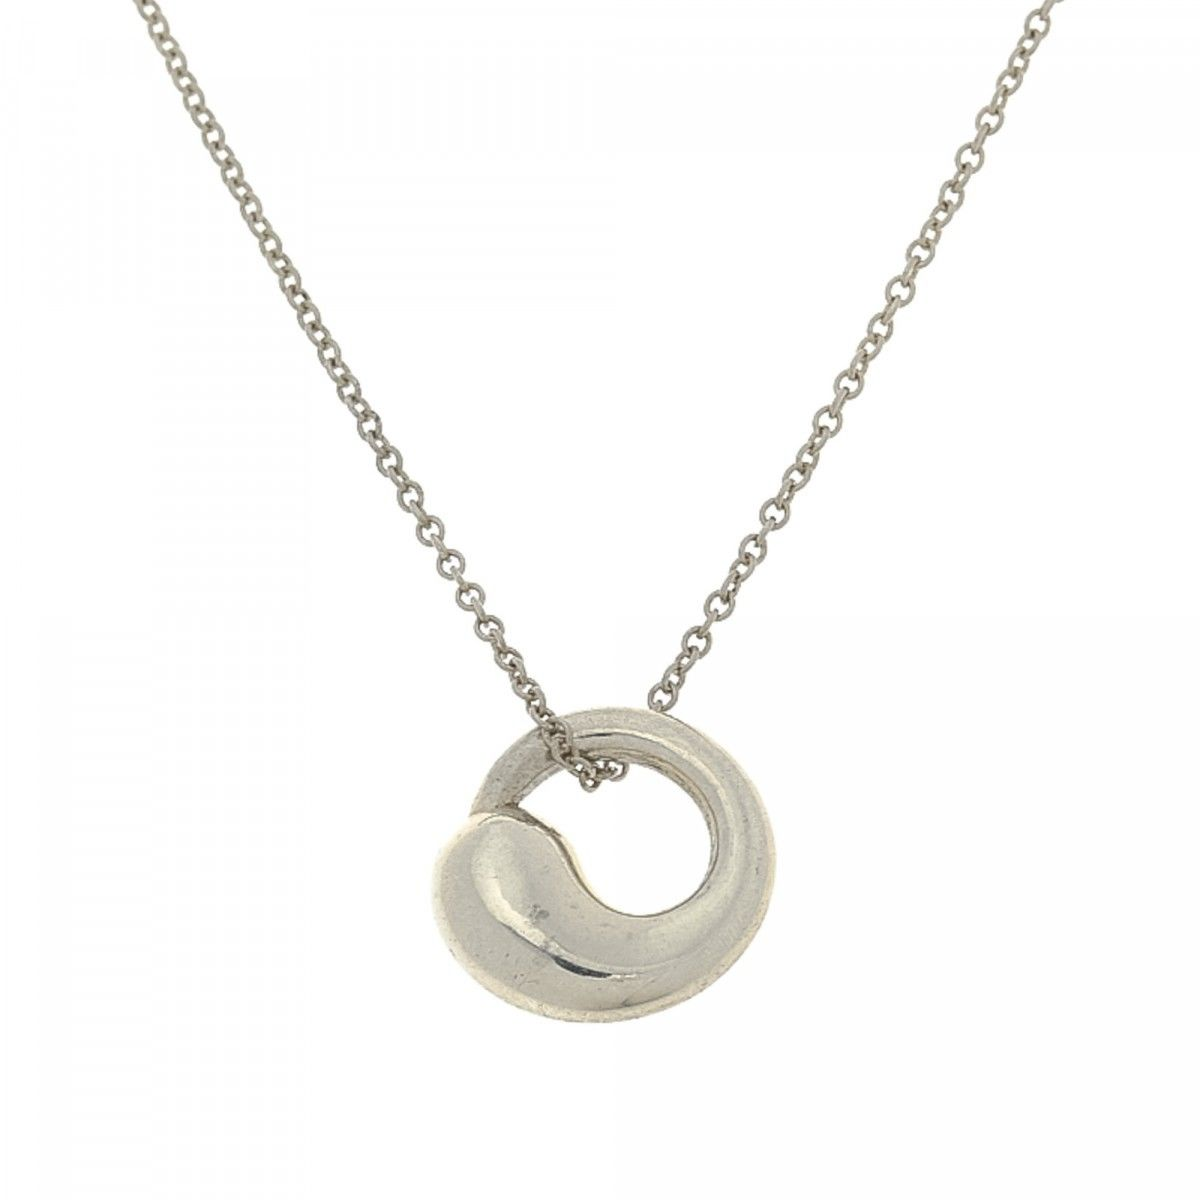 Tiffany elsa peretti eternal circle pendant necklace 425cm 925 tiffany elsa peretti eternal circle pendant necklace 425cm 925 sterling silver lxrandco pre owned luxury vintage mozeypictures